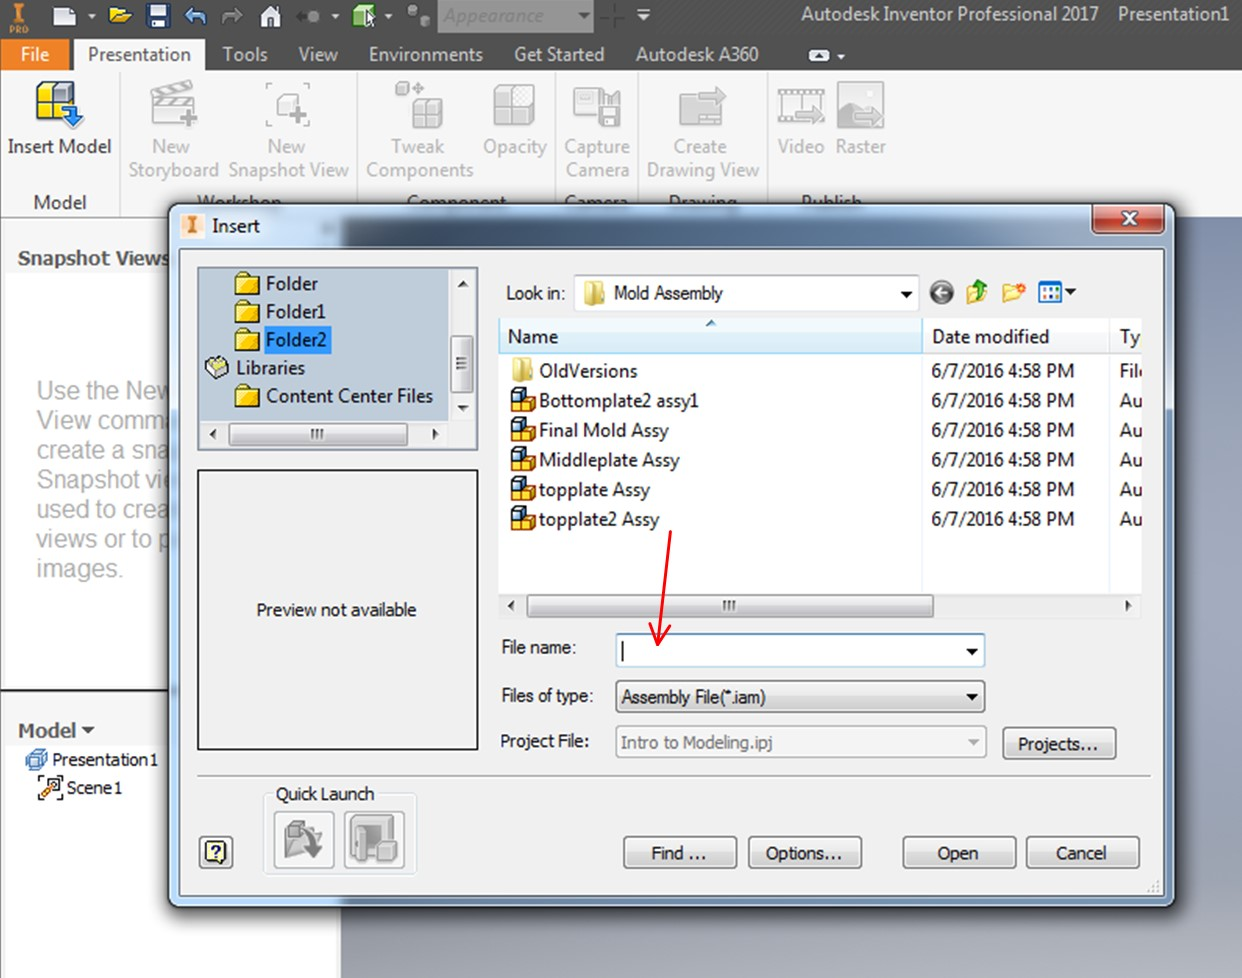 Inventor 2017 Presentation Files – The New Look and Feel | MDO Team